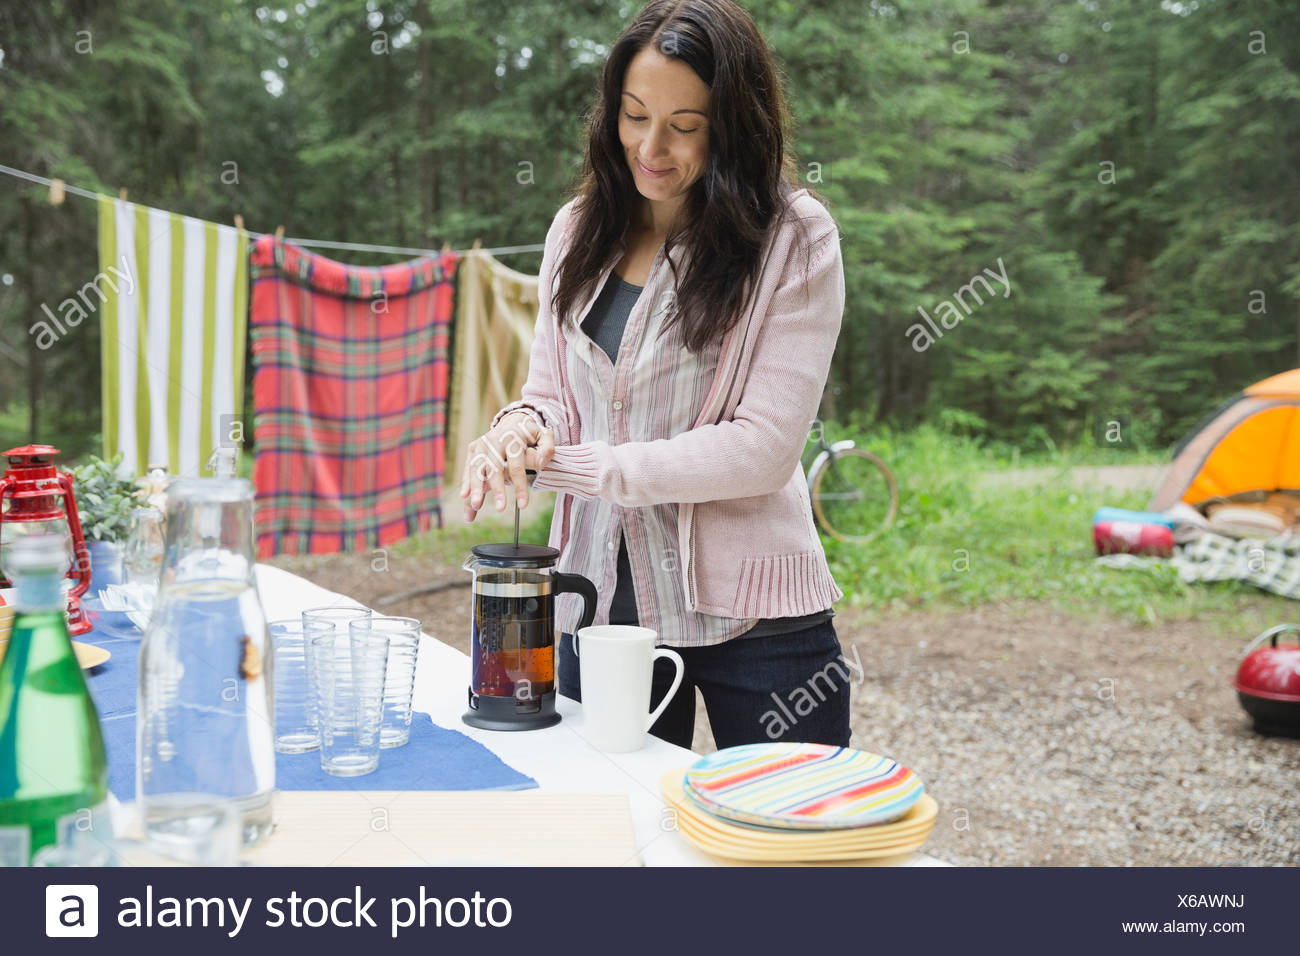 Woman using coffee press at campsite - Stock Image